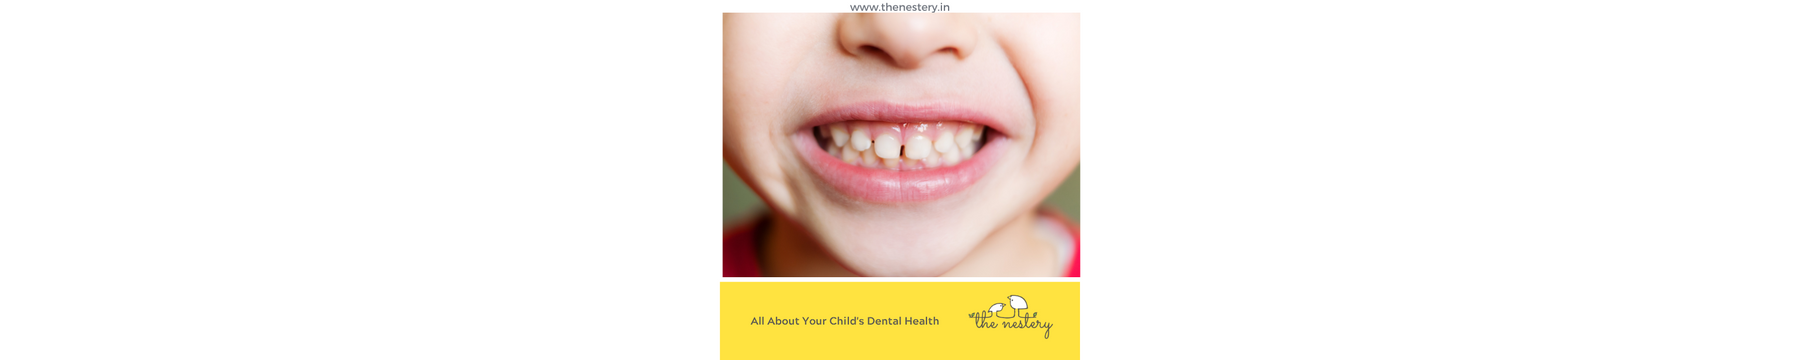 All About Your Child's Dental Health